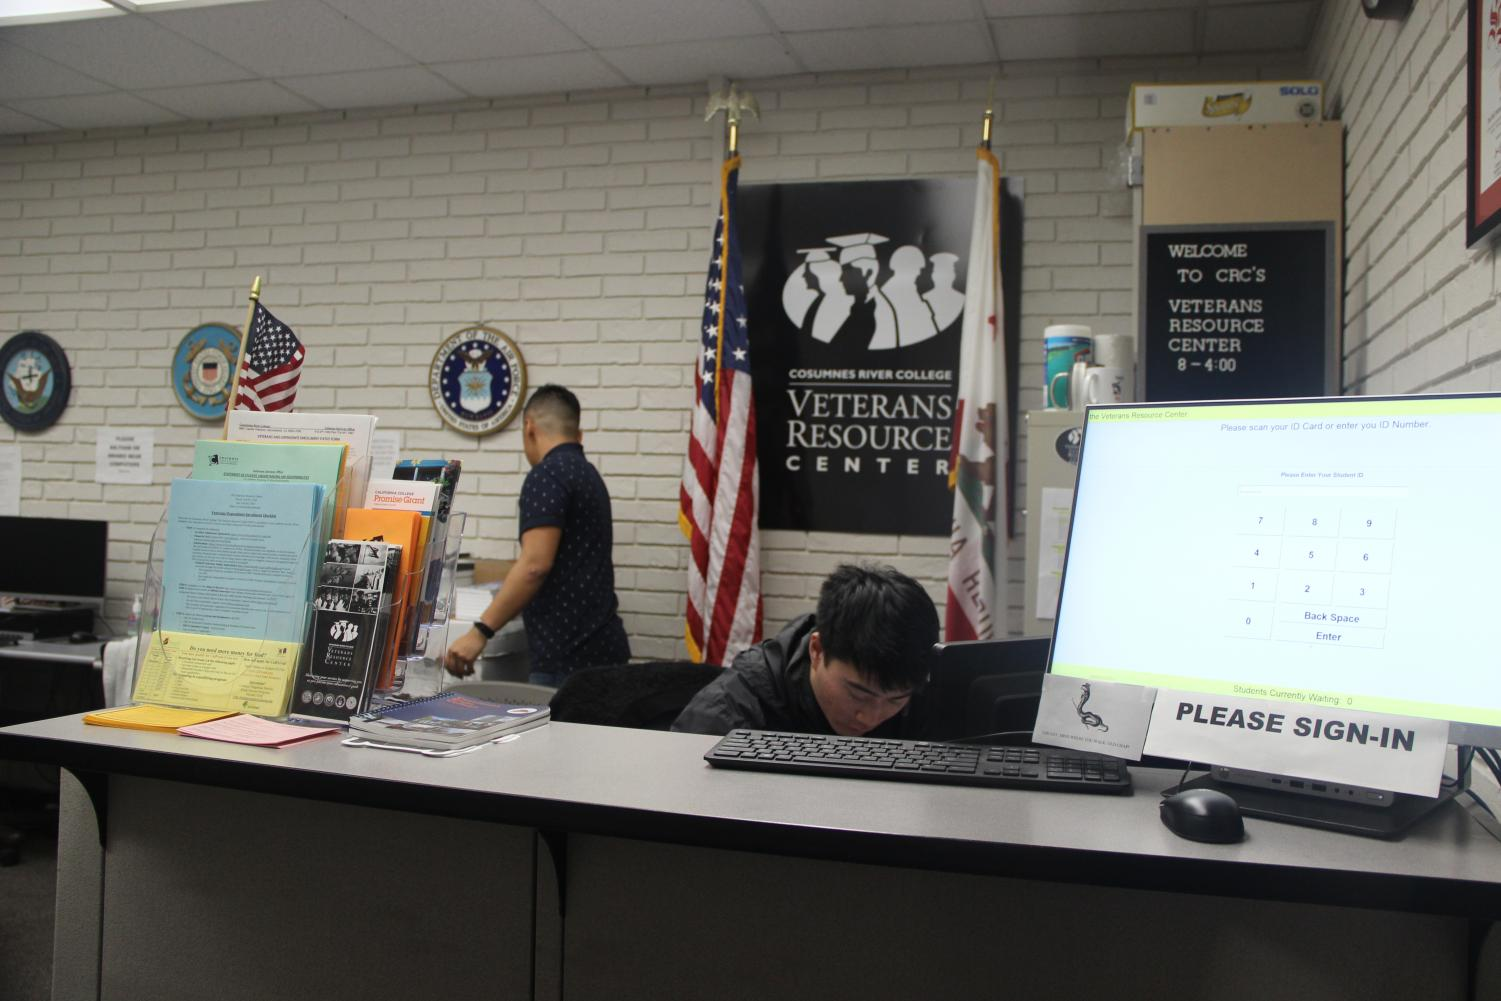 The Veteran Resource Center, located in L-103, gives student veterans a space to acquire various types of resources. To qualify for services provided by the VRC, students must bring a DD-214 form to prove their years of service.